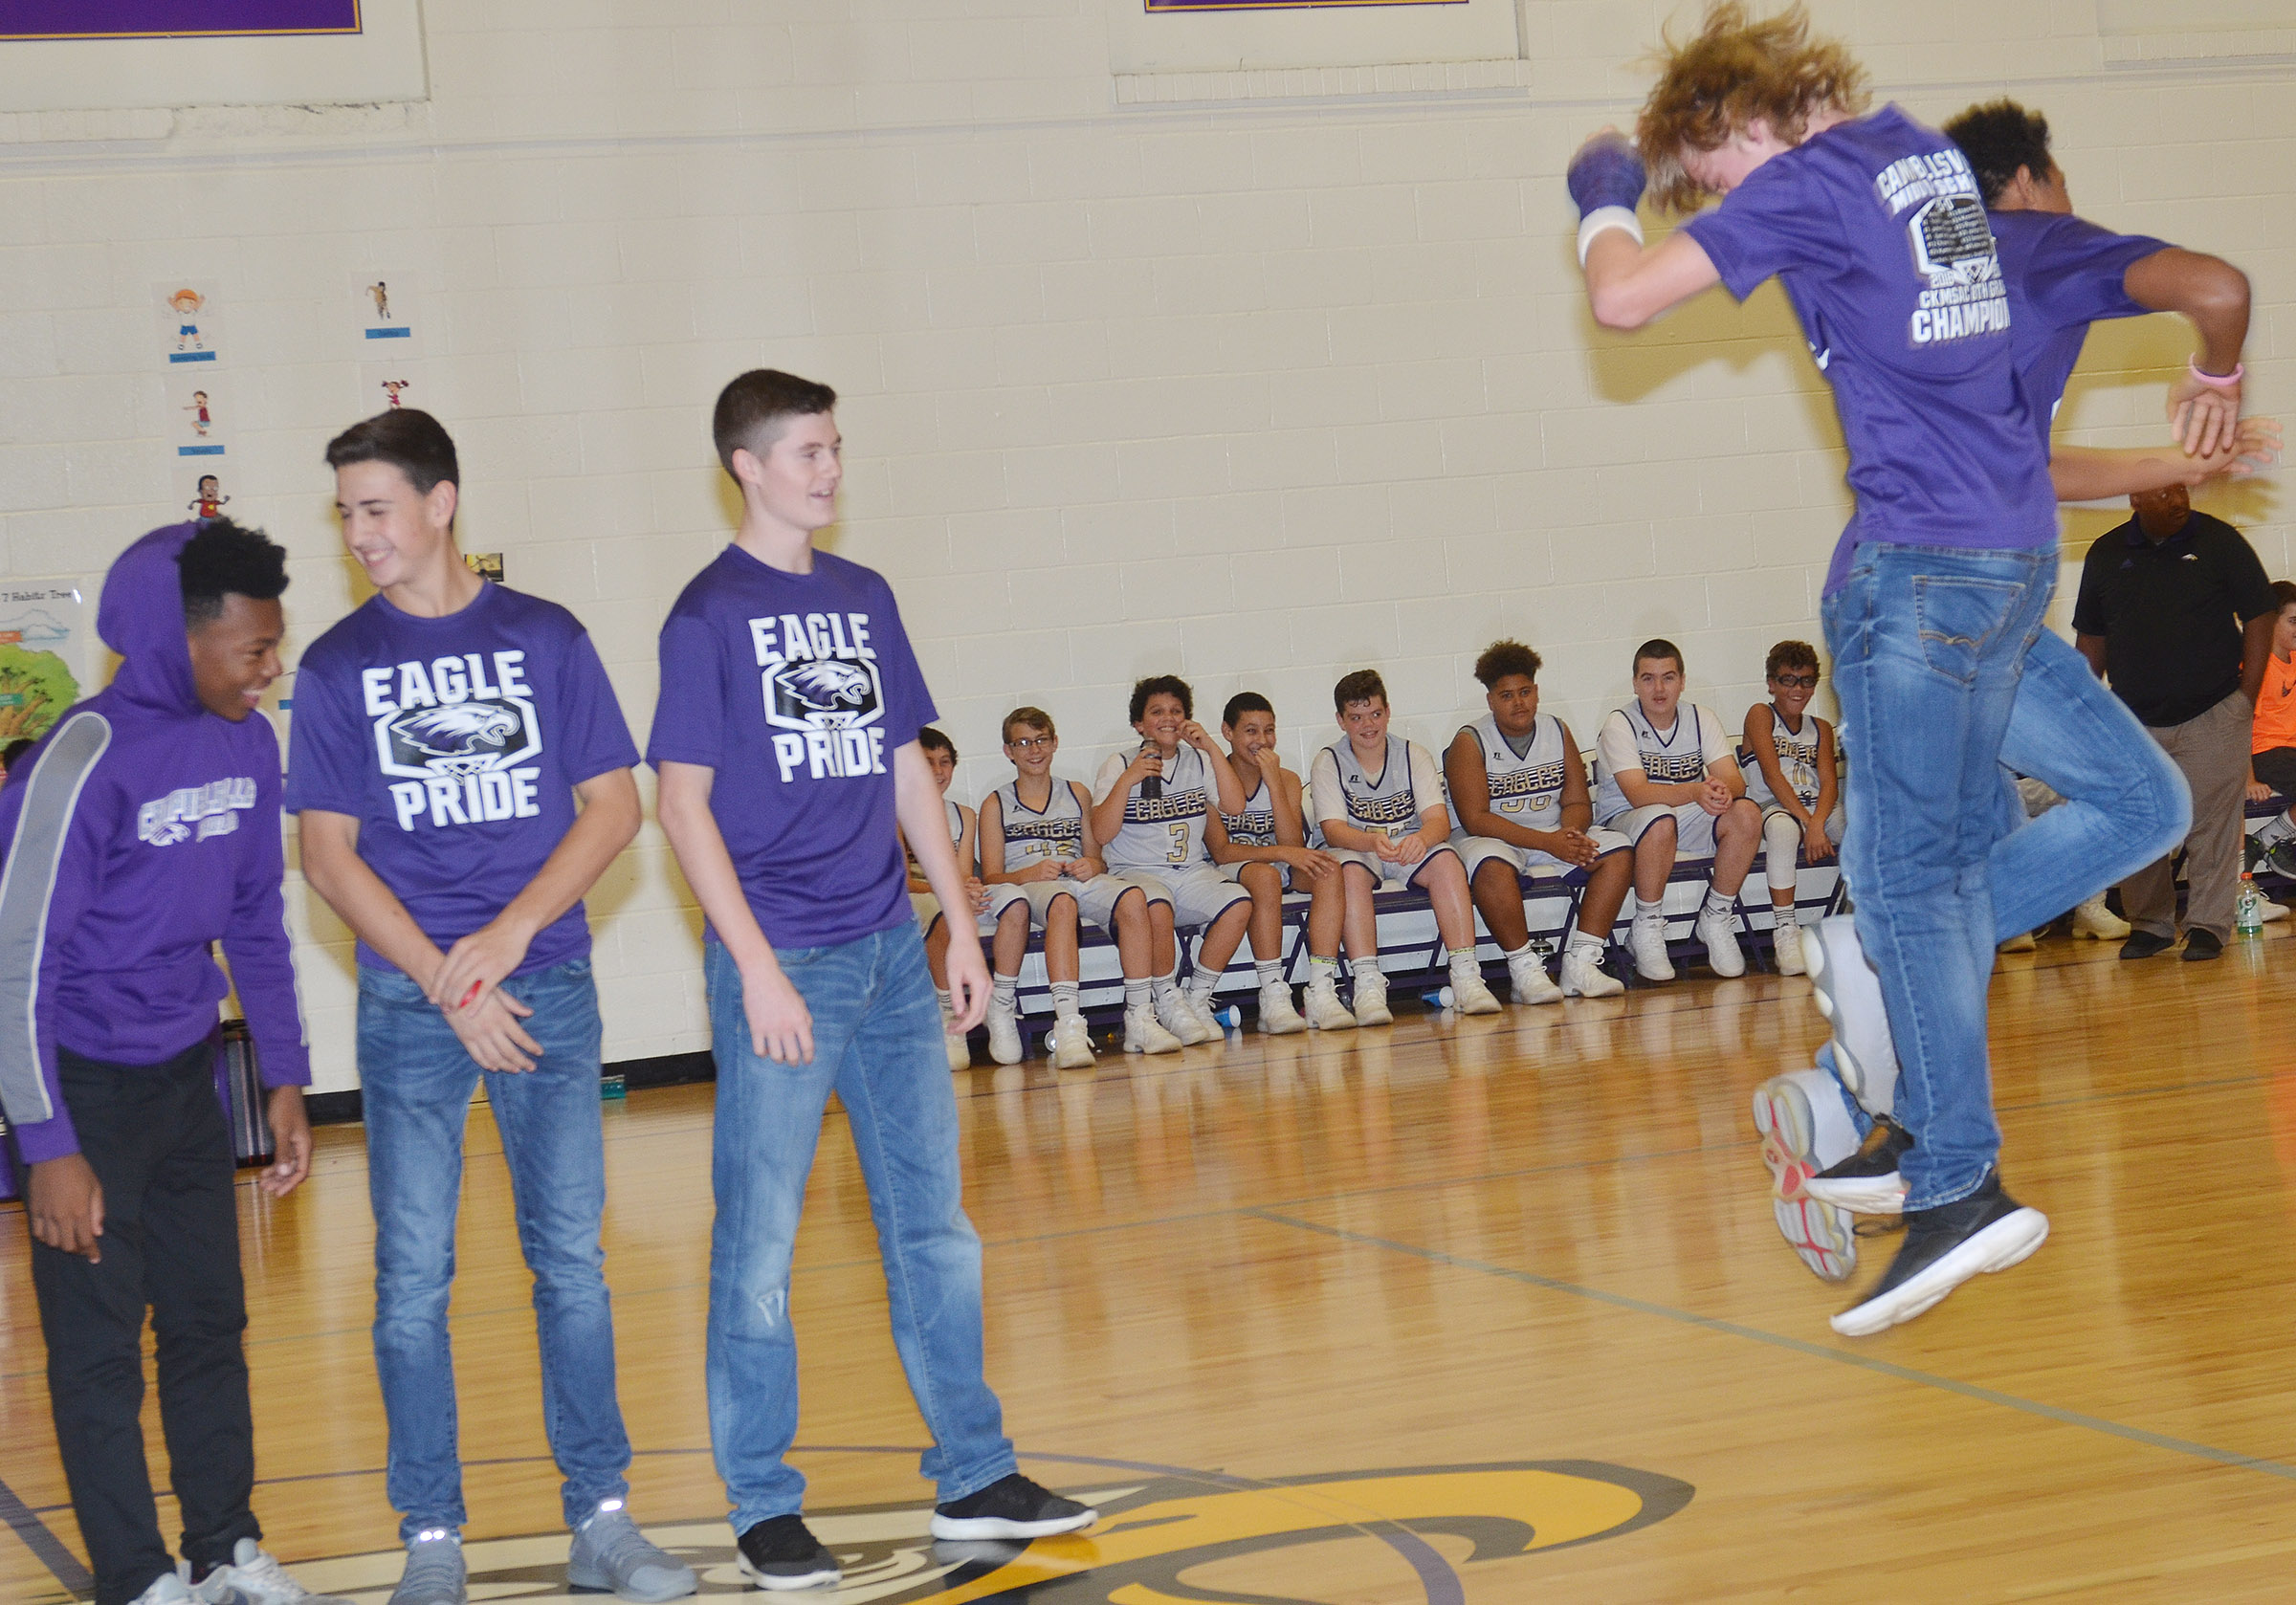 CHS freshmen Arren Hash and Jastyn Shively celebrate as they are honored for being a part of the CMS undefeated 2016-2017 boys' basketball team that won the CKMSAC regular season and tournament championships.